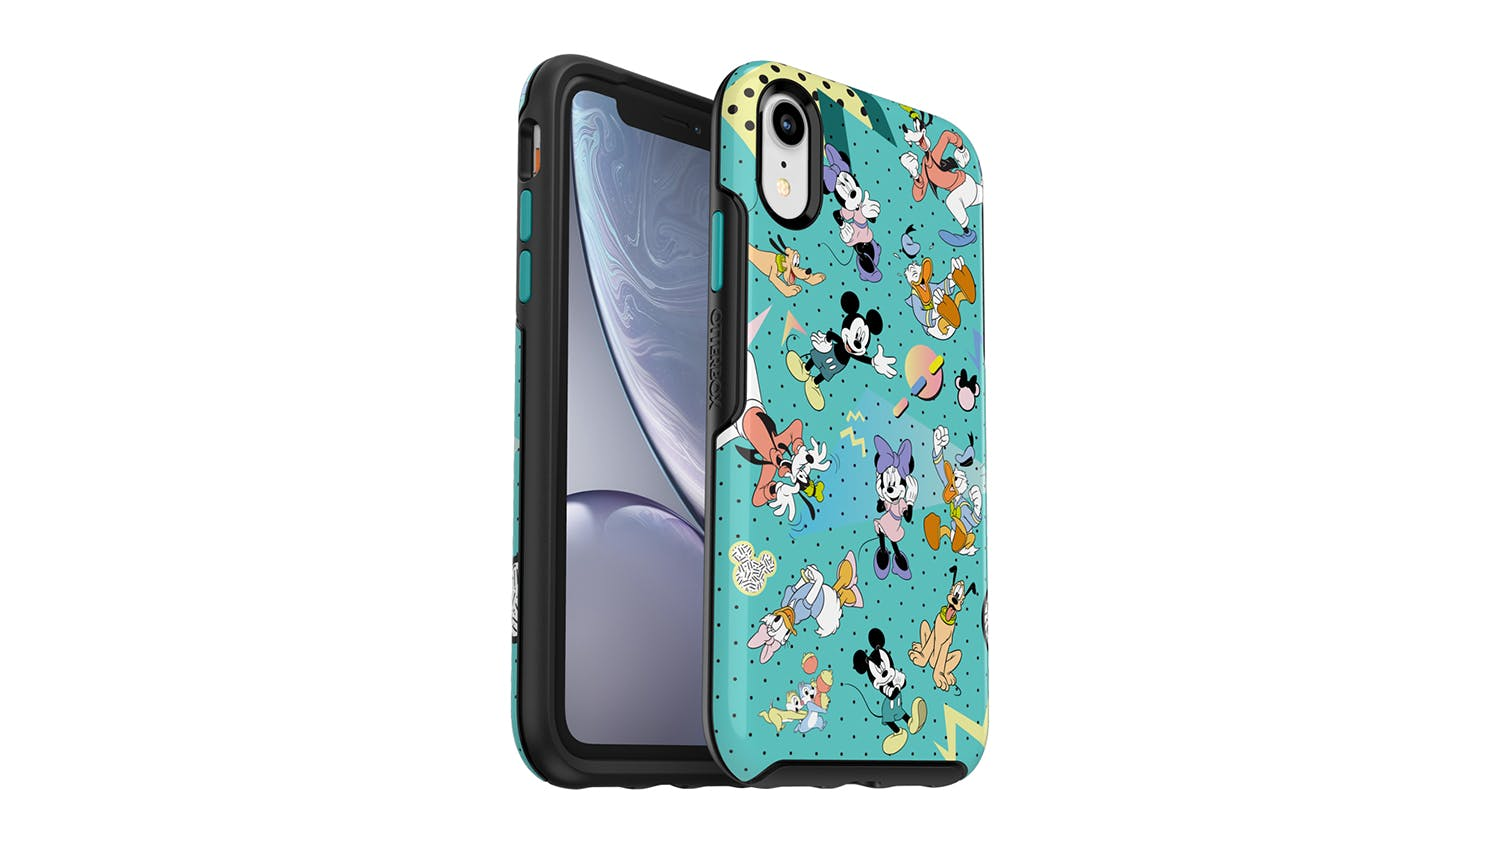 Otterbox Symmetry Rad Friends Case for iPhone XR